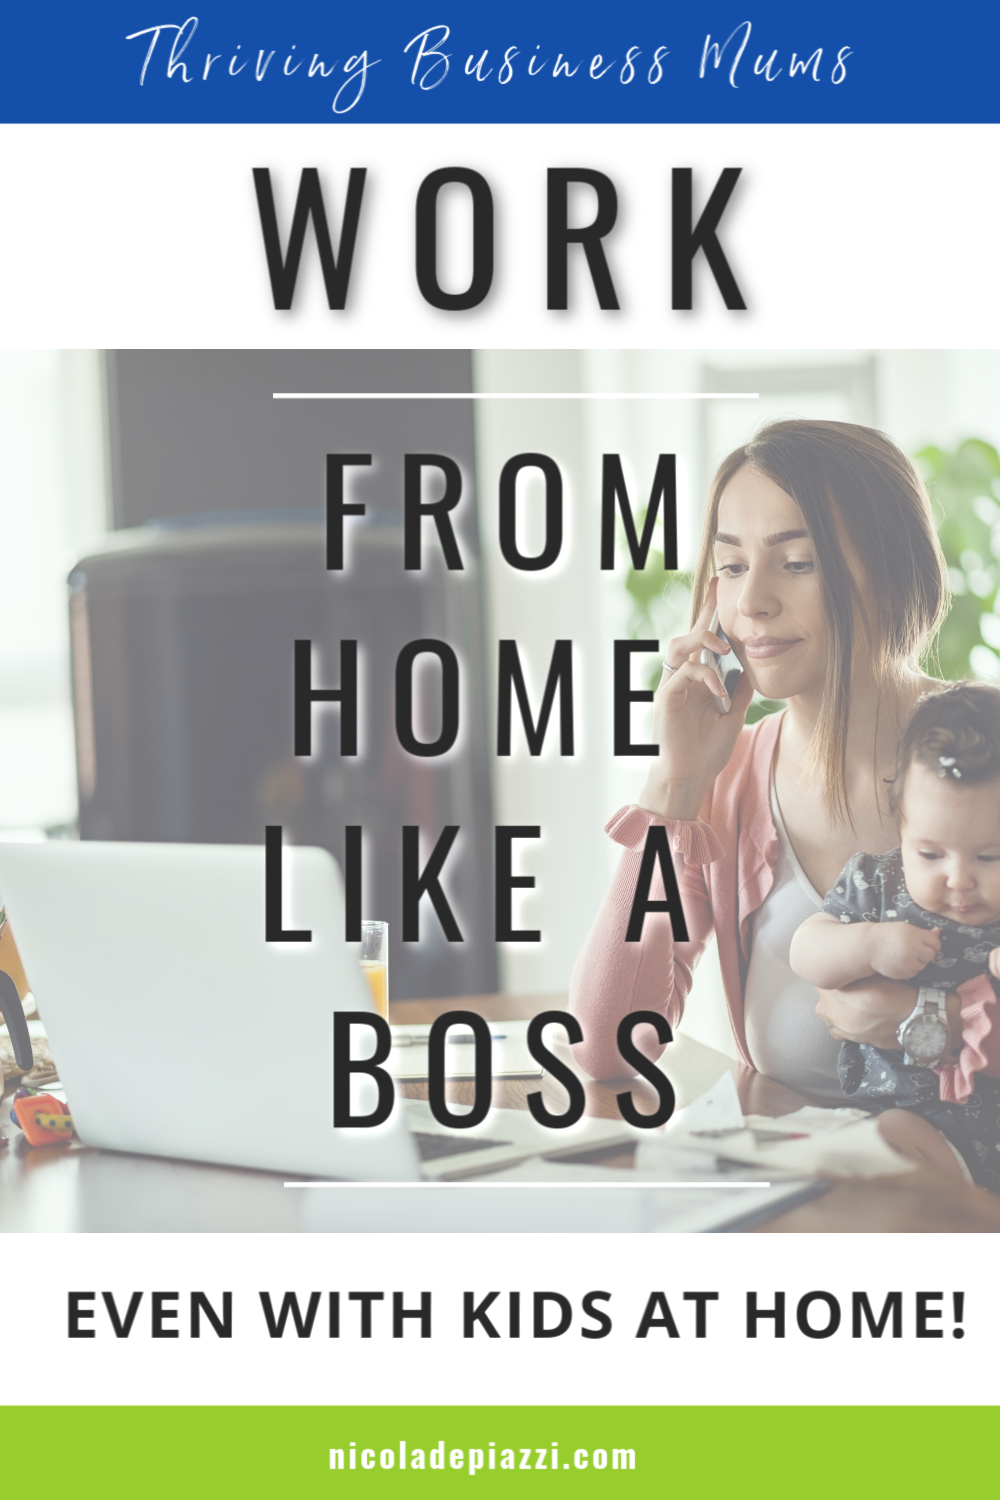 21 tips to work from home like a boss